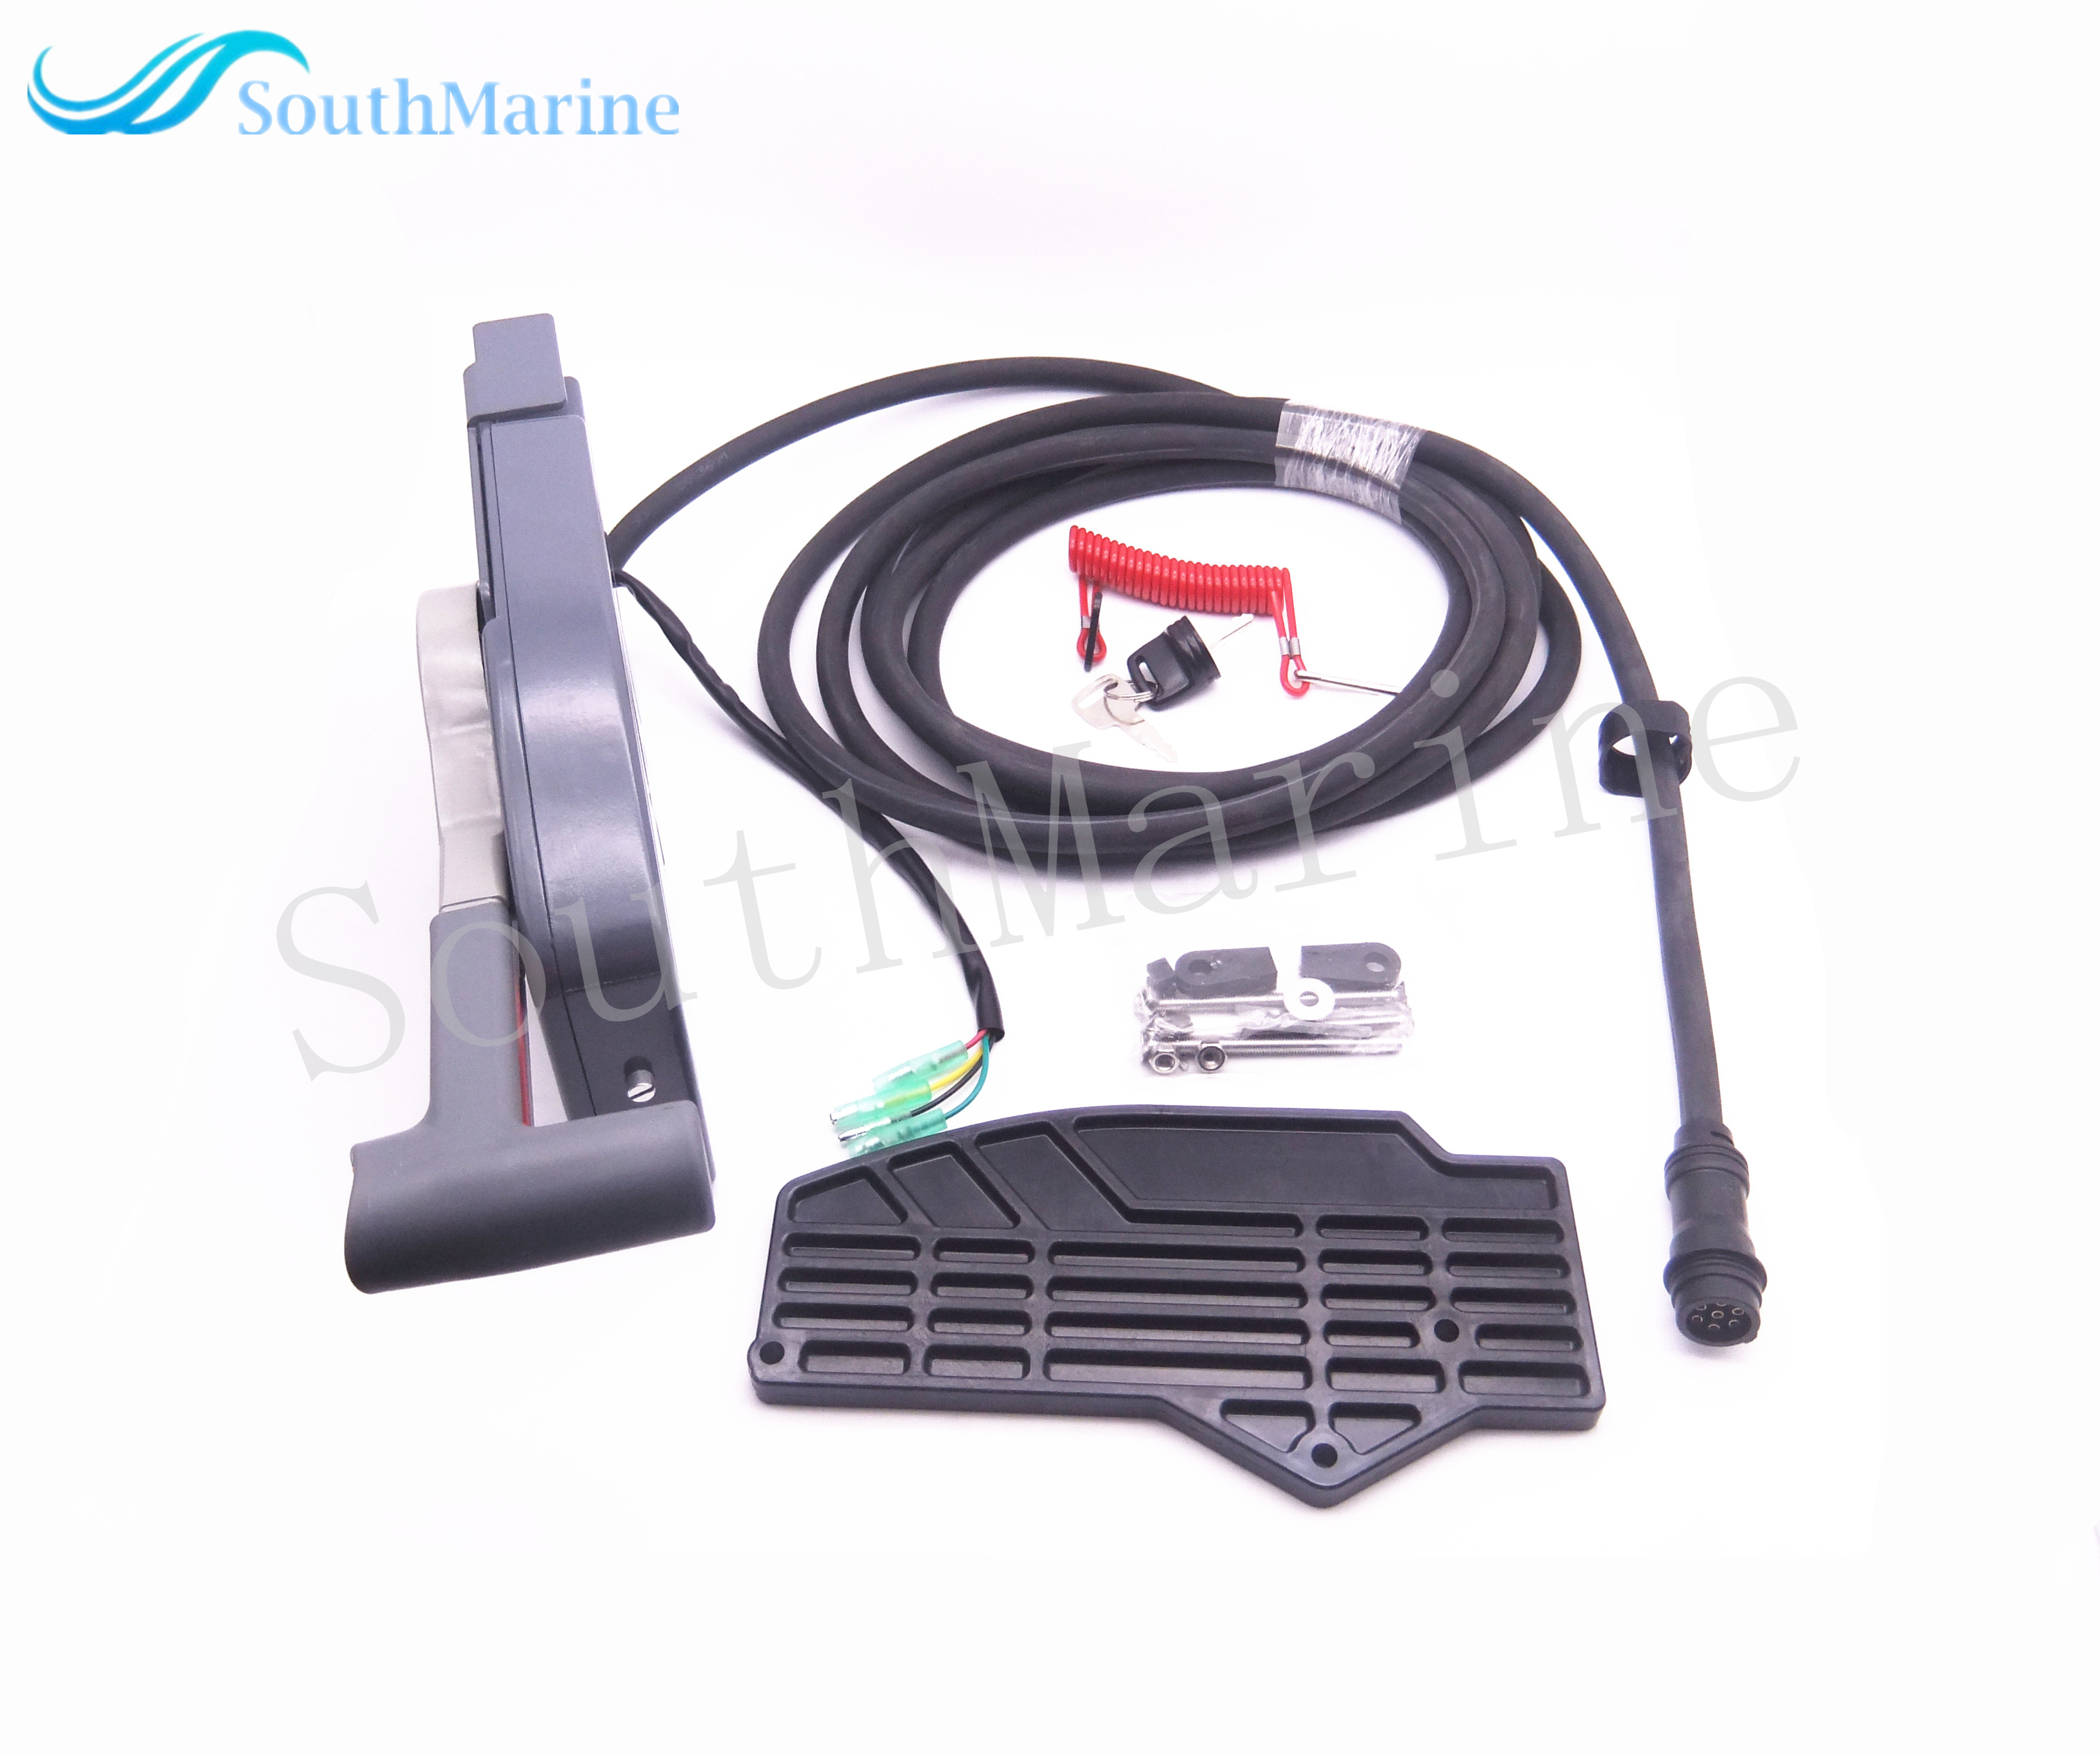 Boat Motor 703-48230-14 703-48203-15 703-48203-17 Remote Control Box Assy for Yamaha Outboard Engine,7 Pins , Left Side Push цена 2017